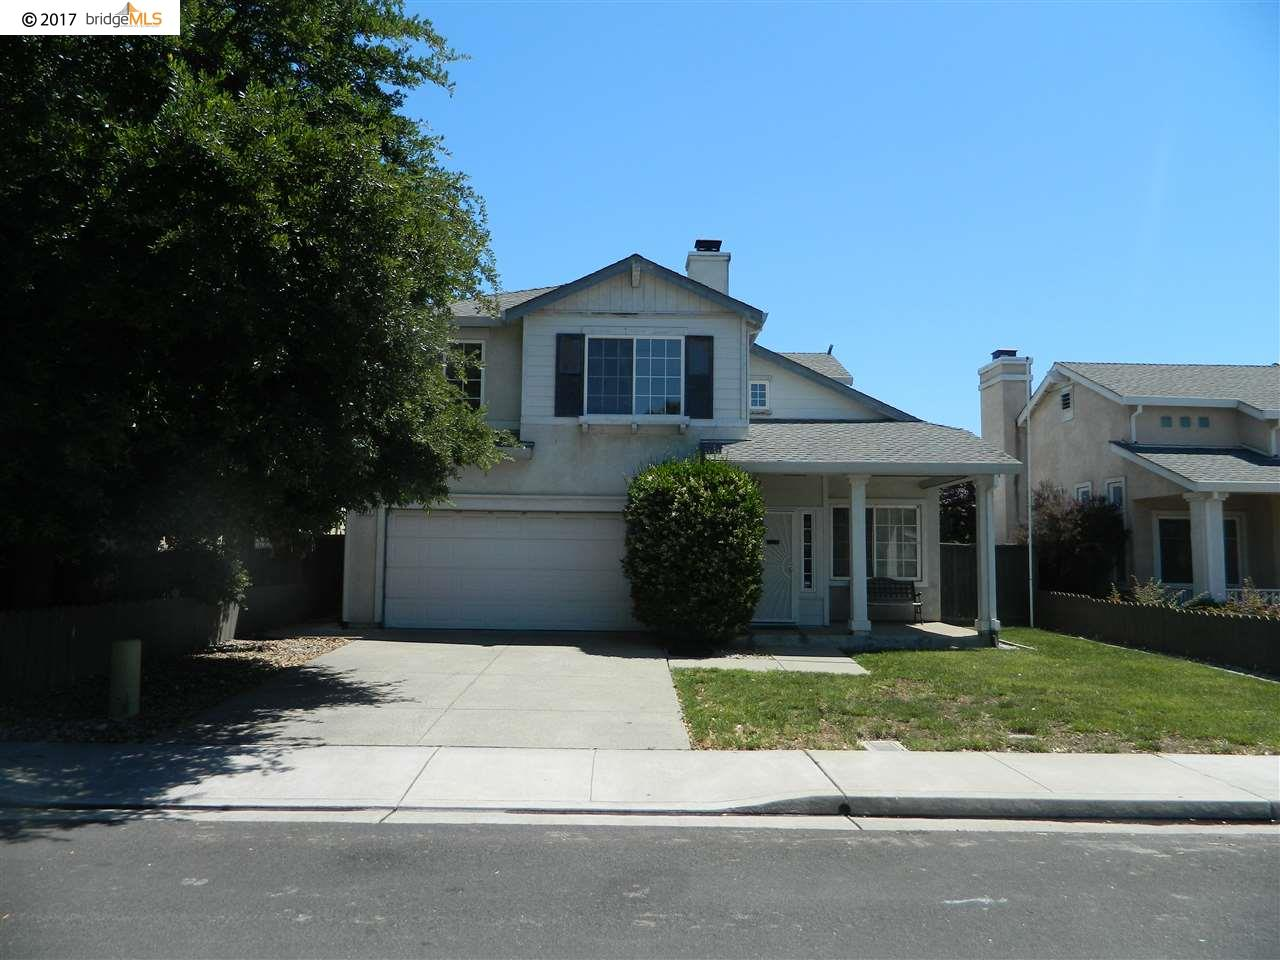 Additional photo for property listing at 1172 Shadowcliff Way  Brentwood, California 94513 United States